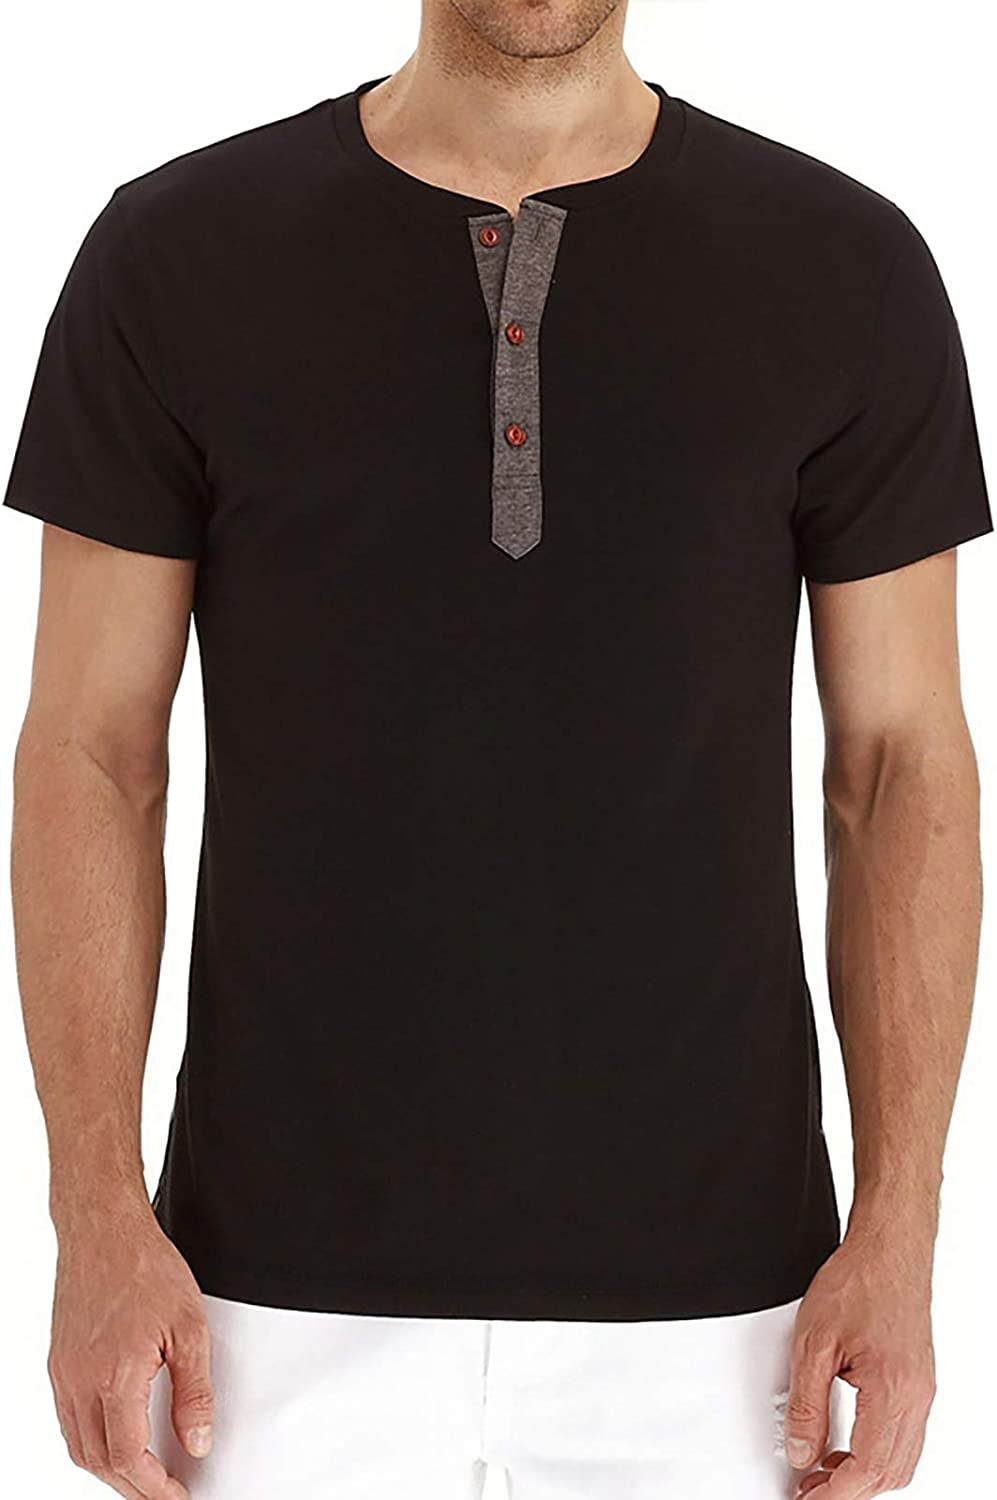 SAMACHICA Mens Fashion Casual Front Placket Henley T-Shirts Summer Cotton Short Sleeve Henley T-Shirts